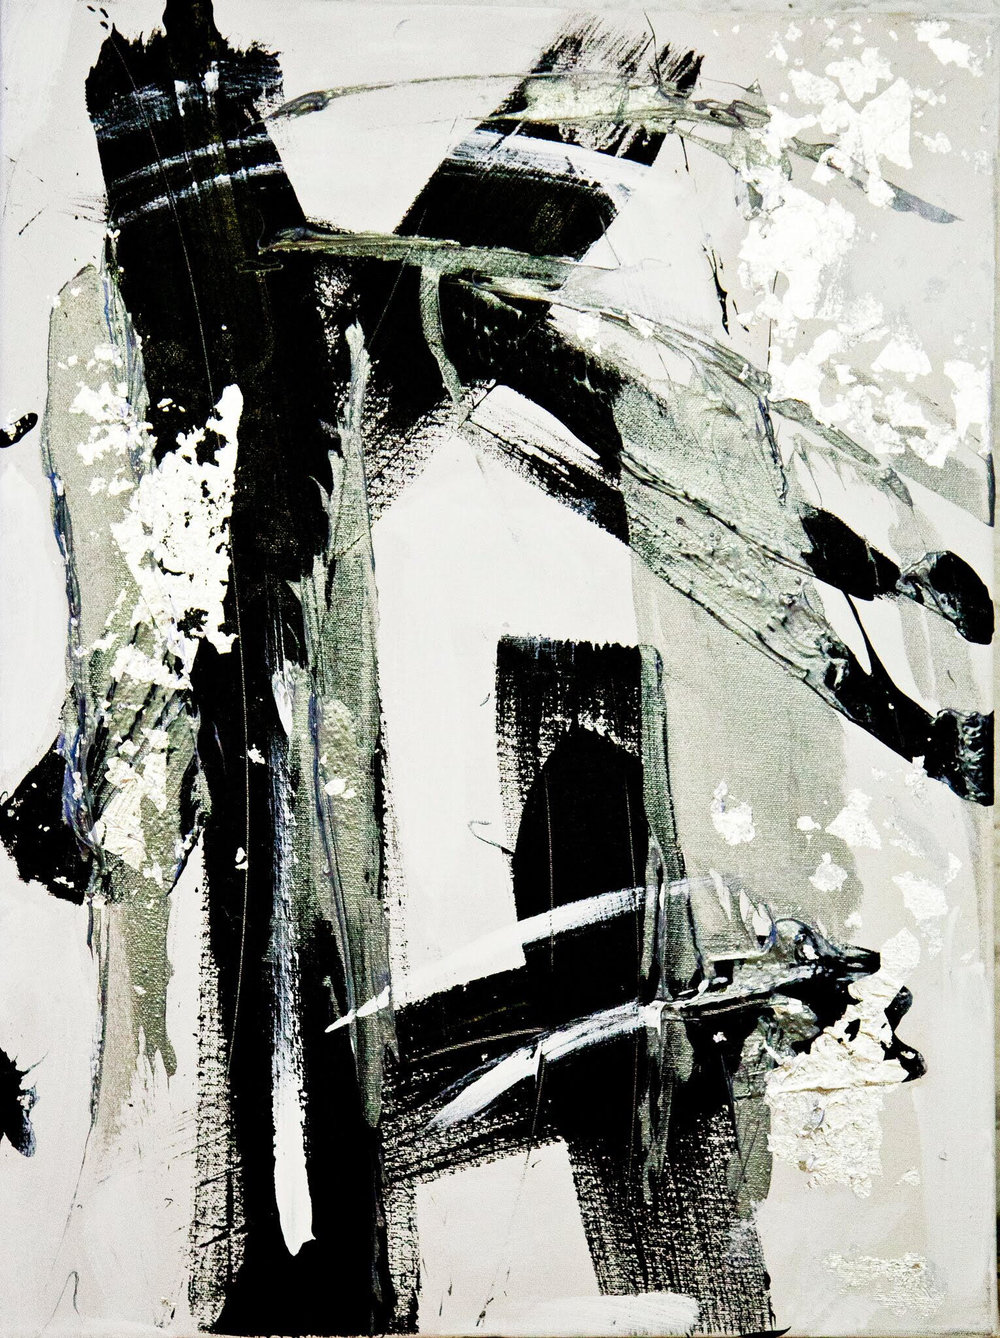 venice series / acrylic on canvas / 30 in. x 20 in.